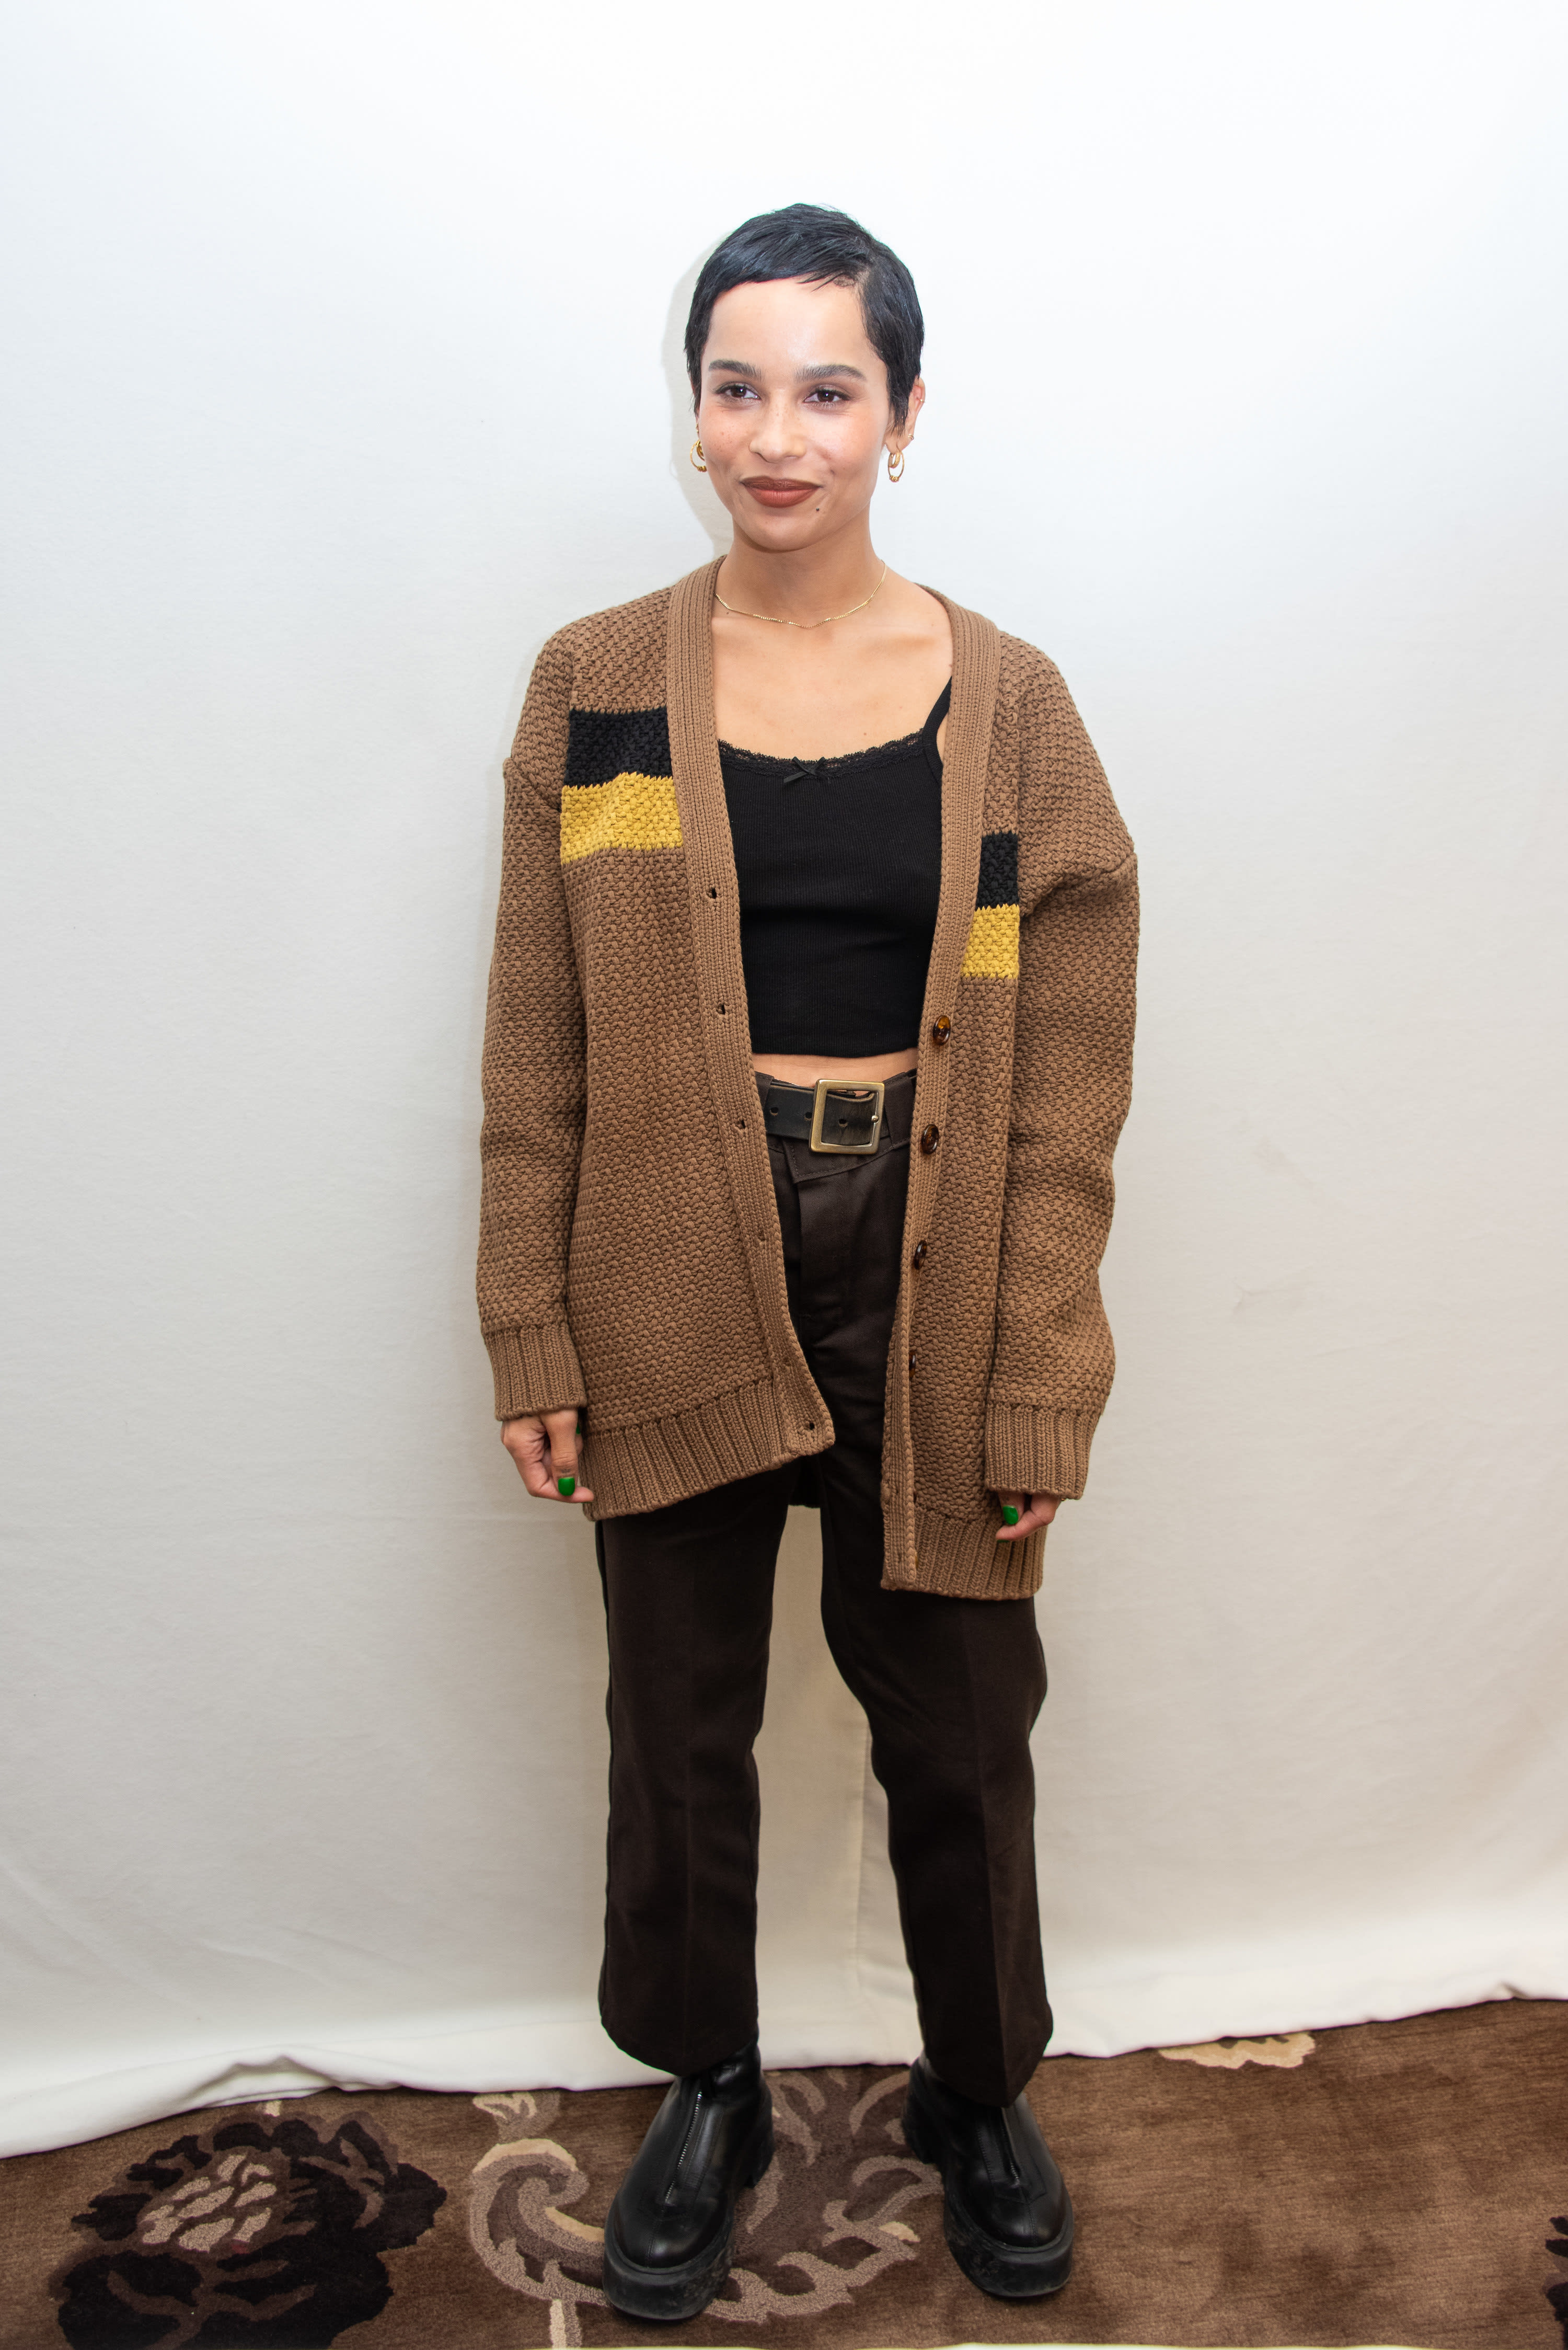 Zoe in jeans oversize cardi, tank and boots